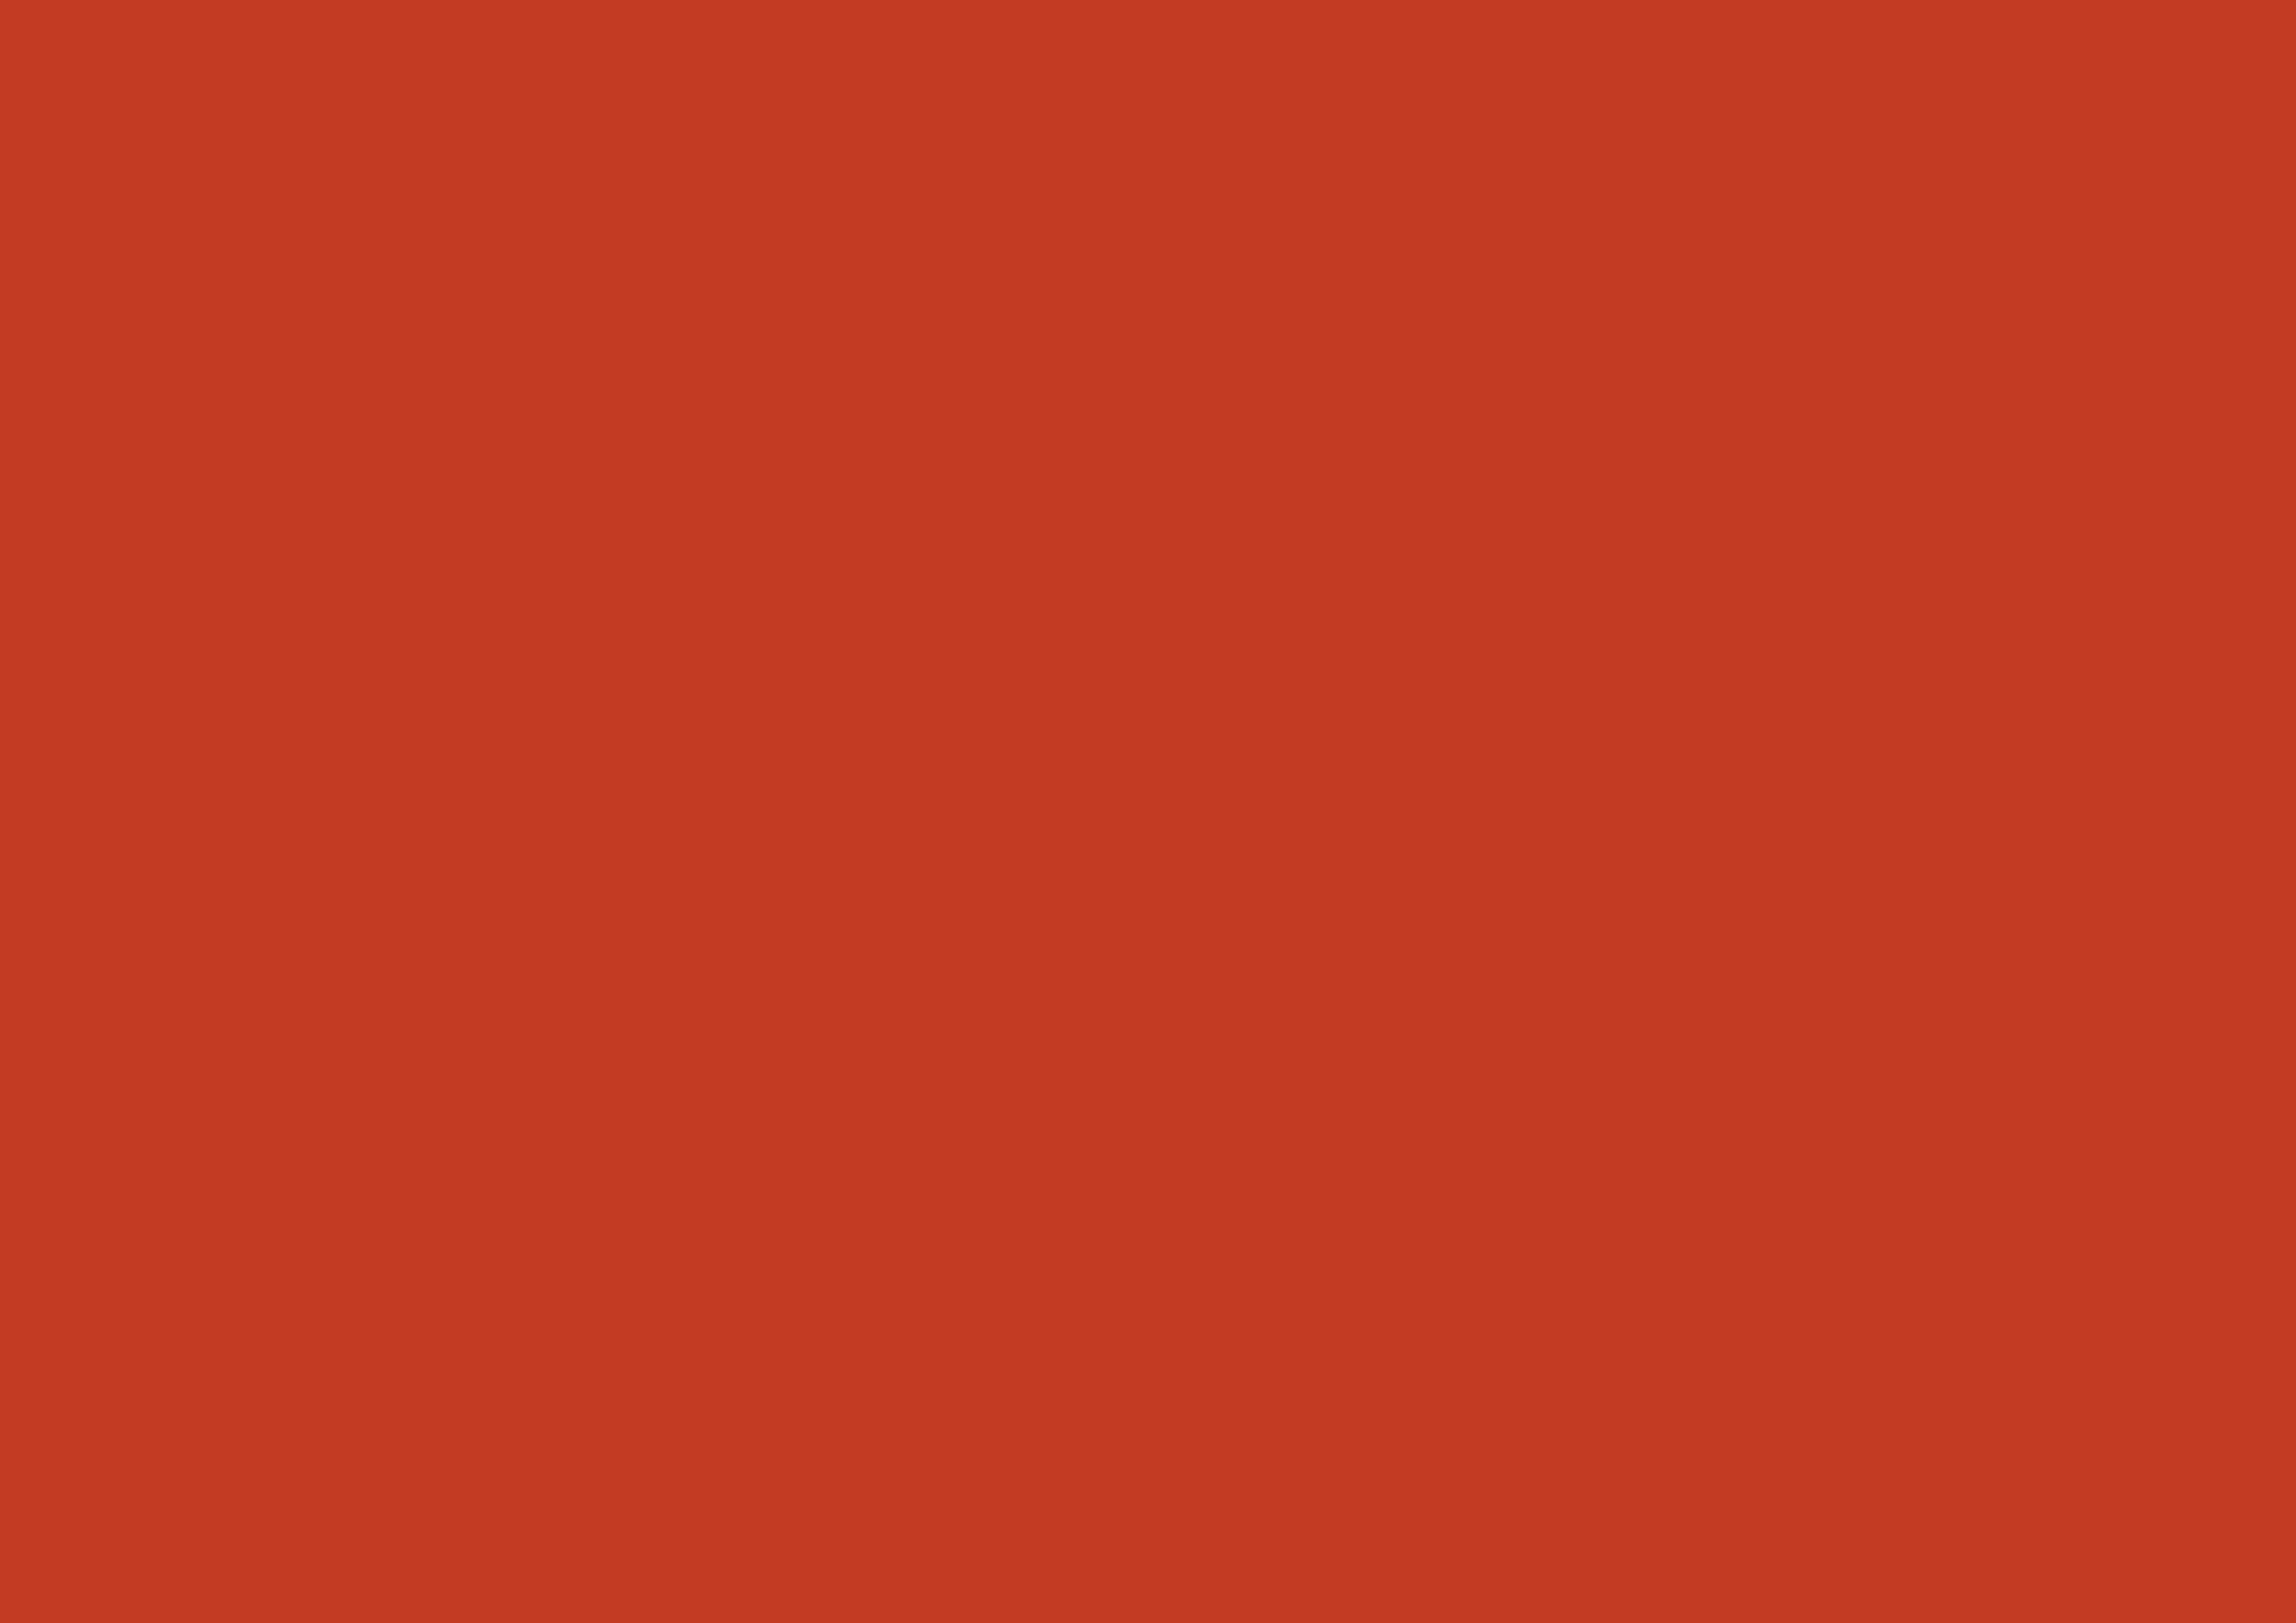 3508x2480 Dark Pastel Red Solid Color Background